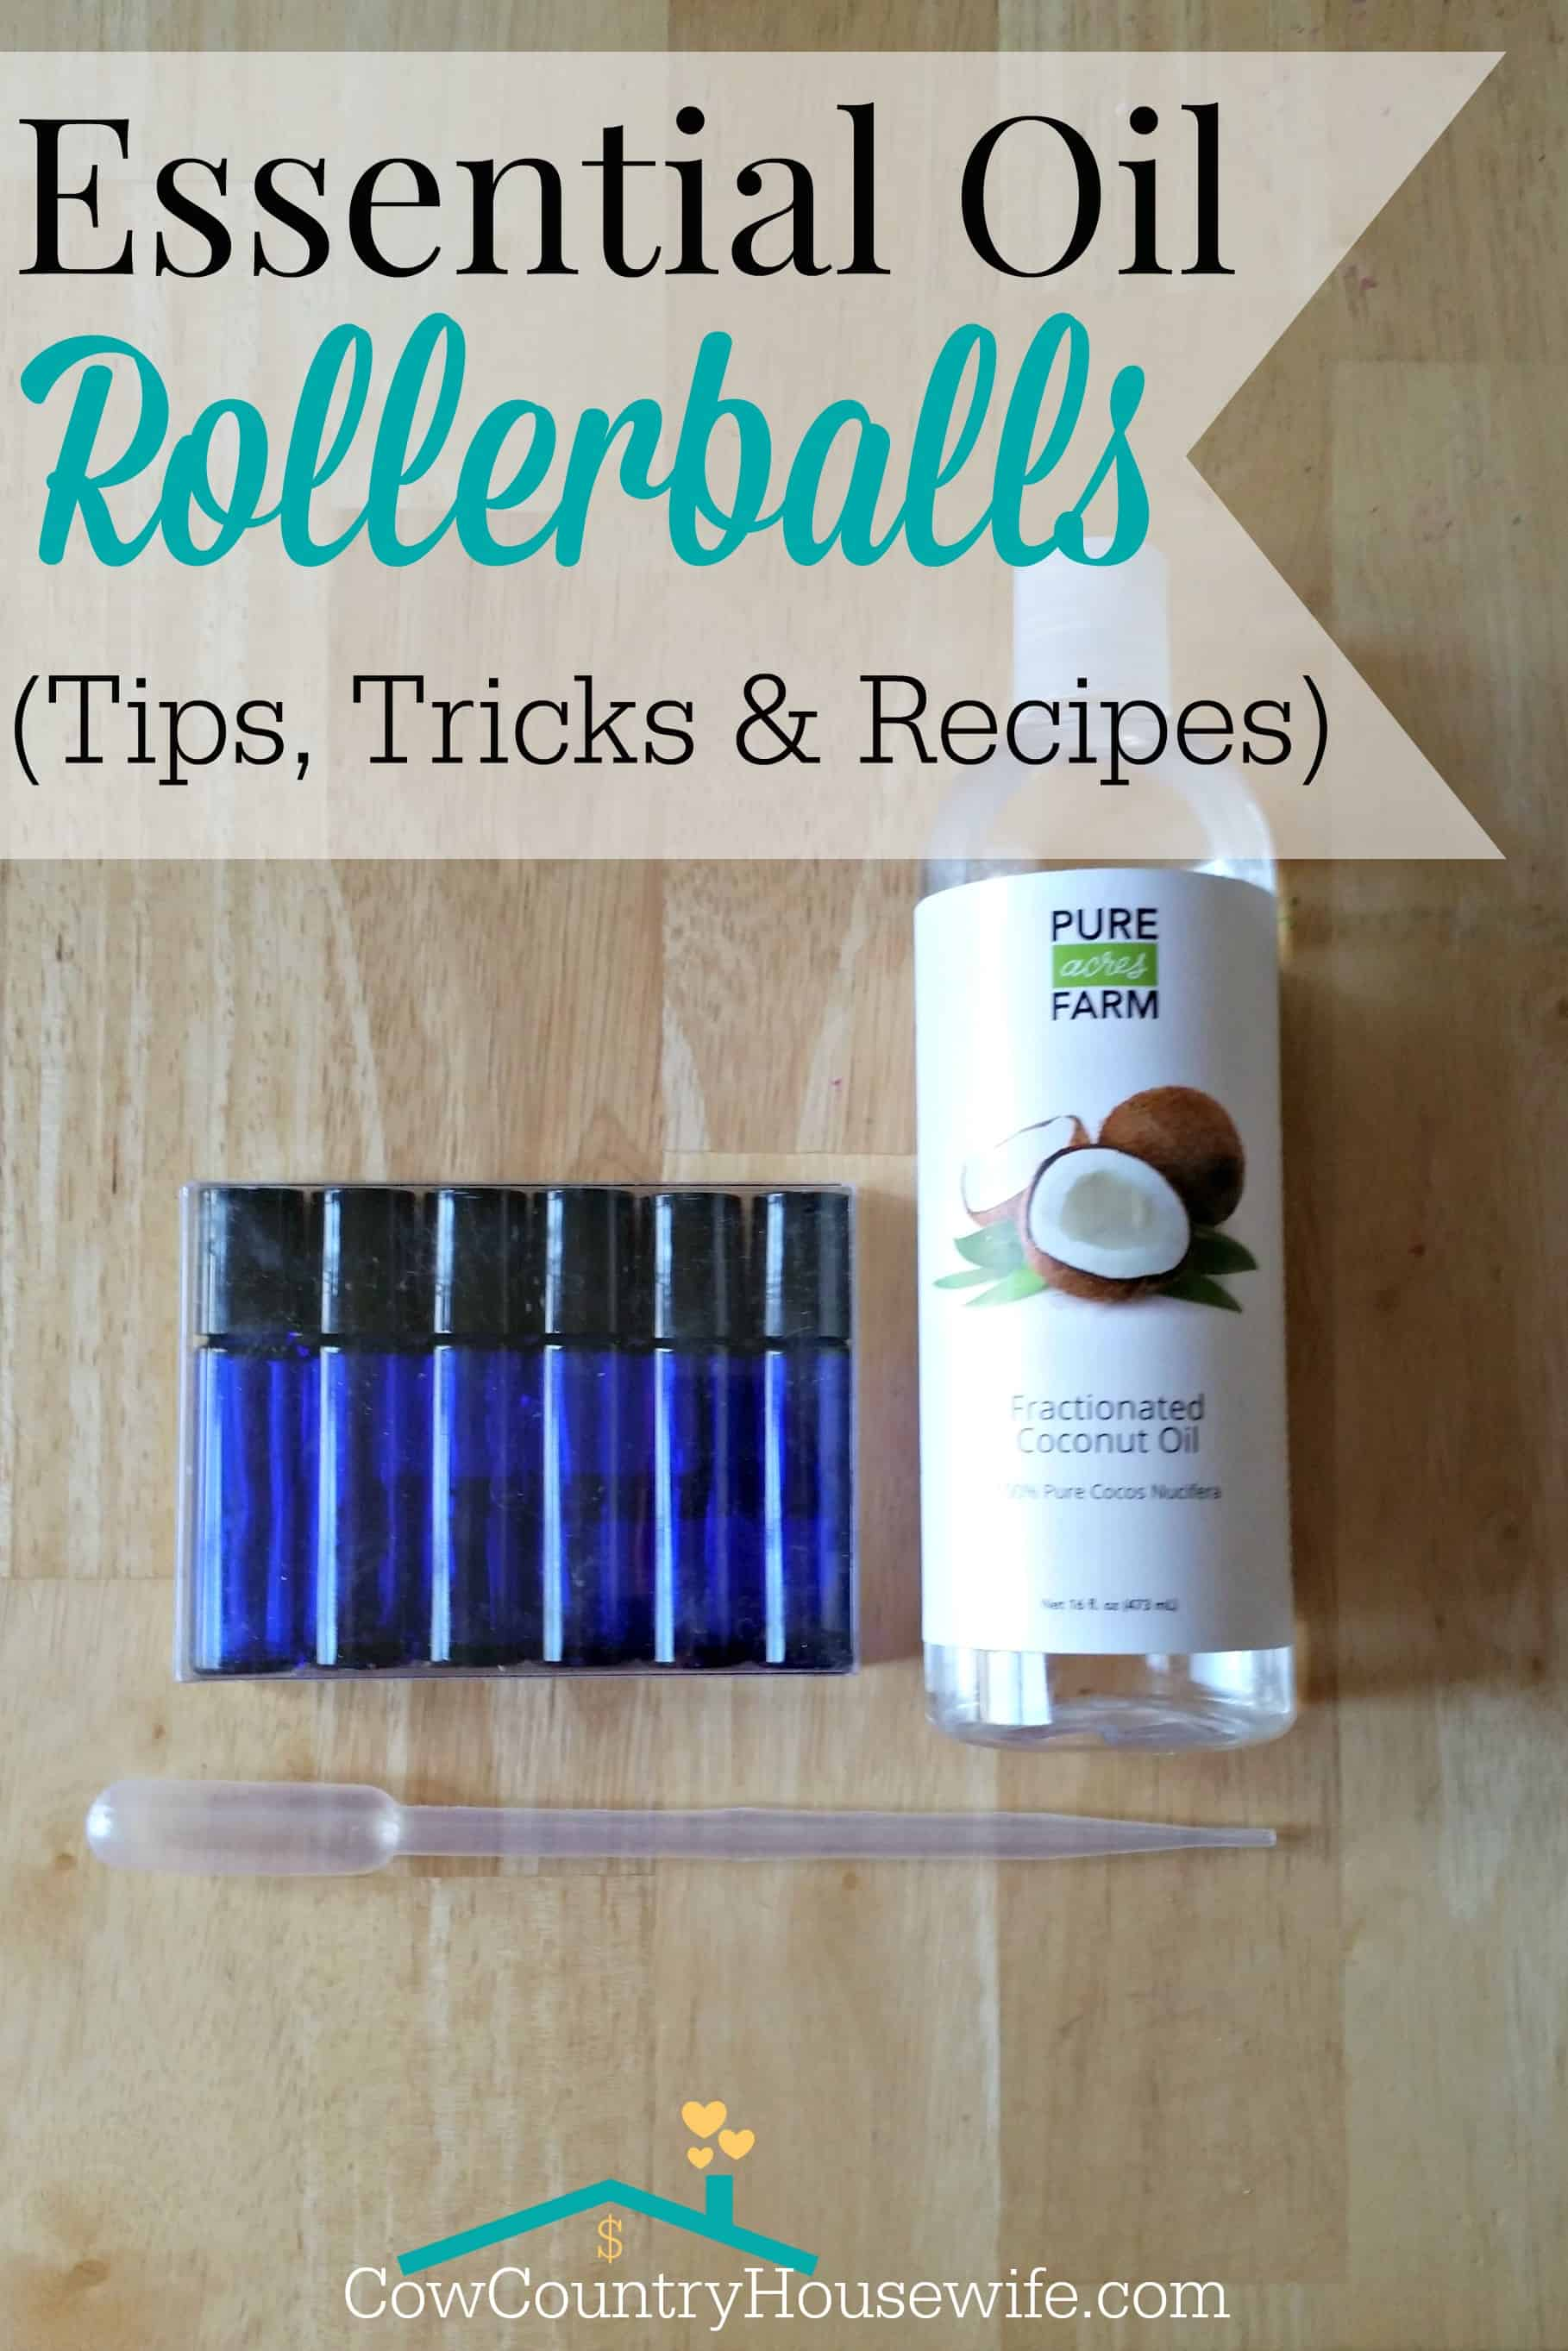 How To Make Essential Oil Roller Bottles At Home